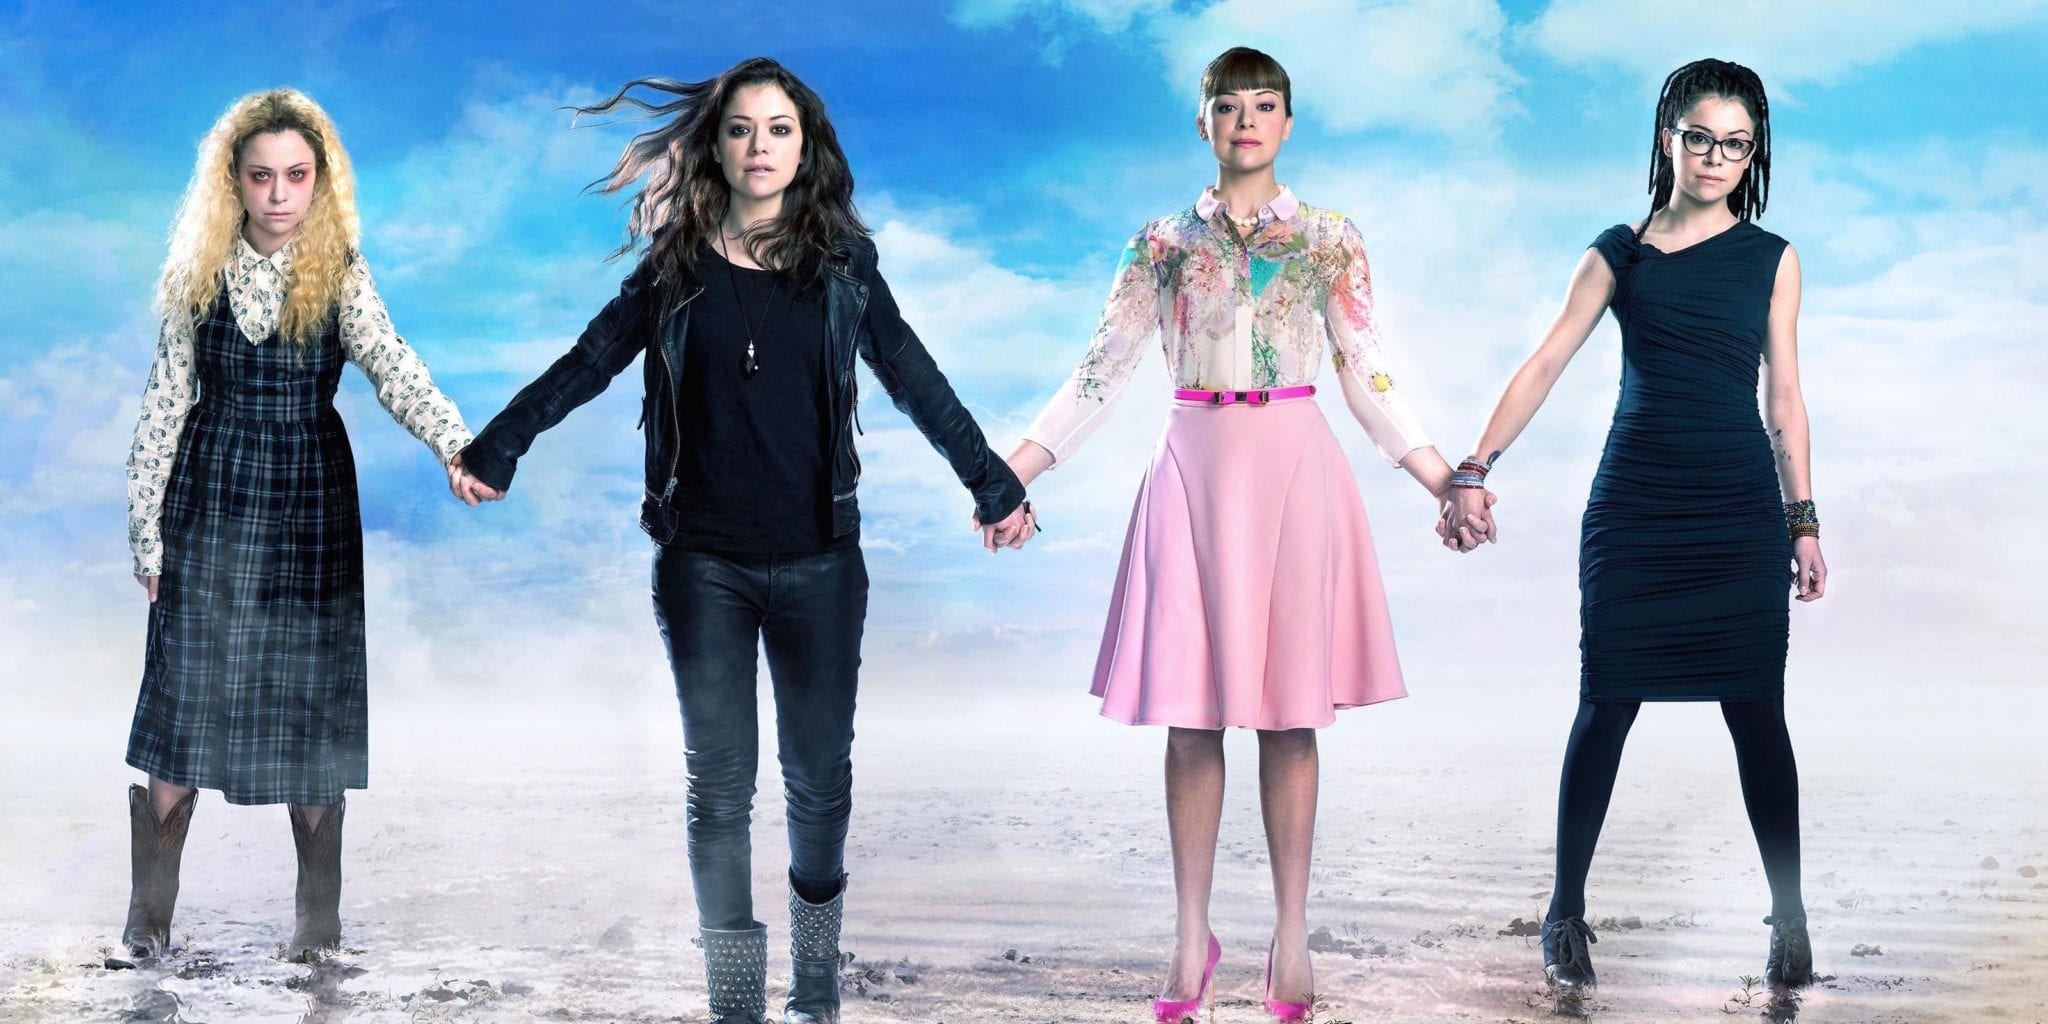 ORPHAN BLACK: THE NEXT CHAPTER - How The Writers Handled Change Of Medium